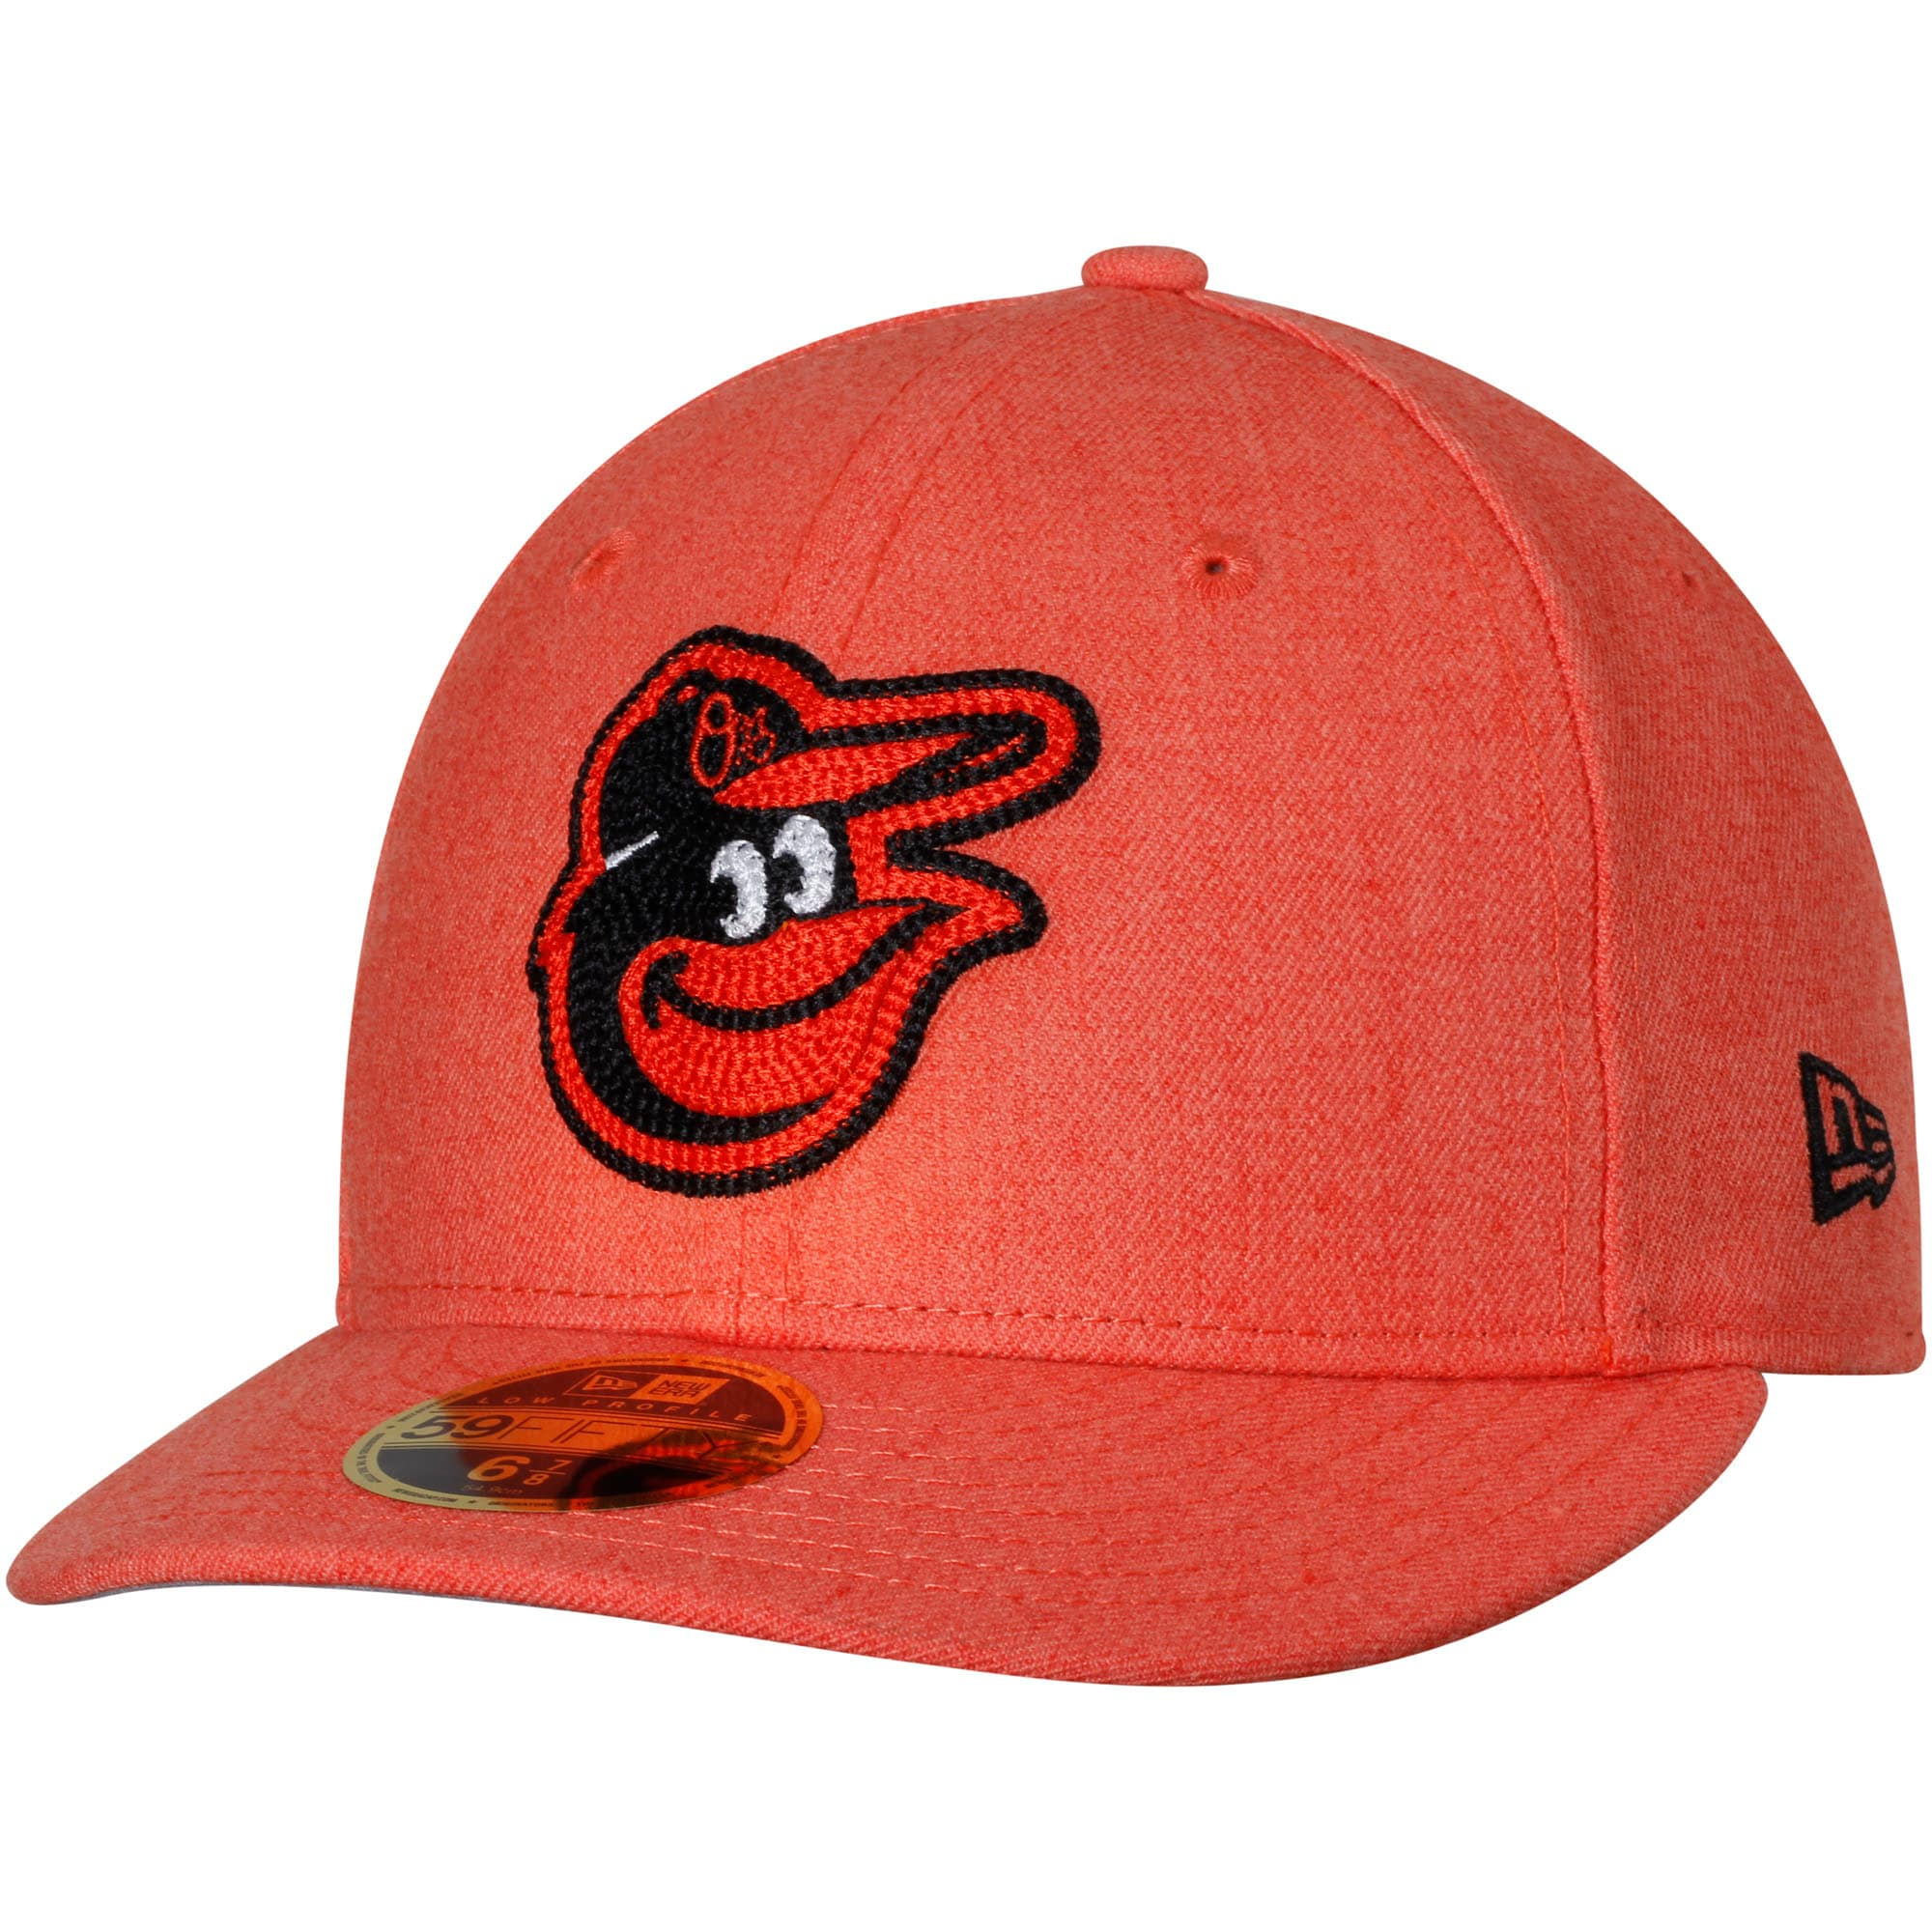 Baltimore Orioles New Era Crisp Low Profile 59FIFTY Fitted Hat - Heathered Orange